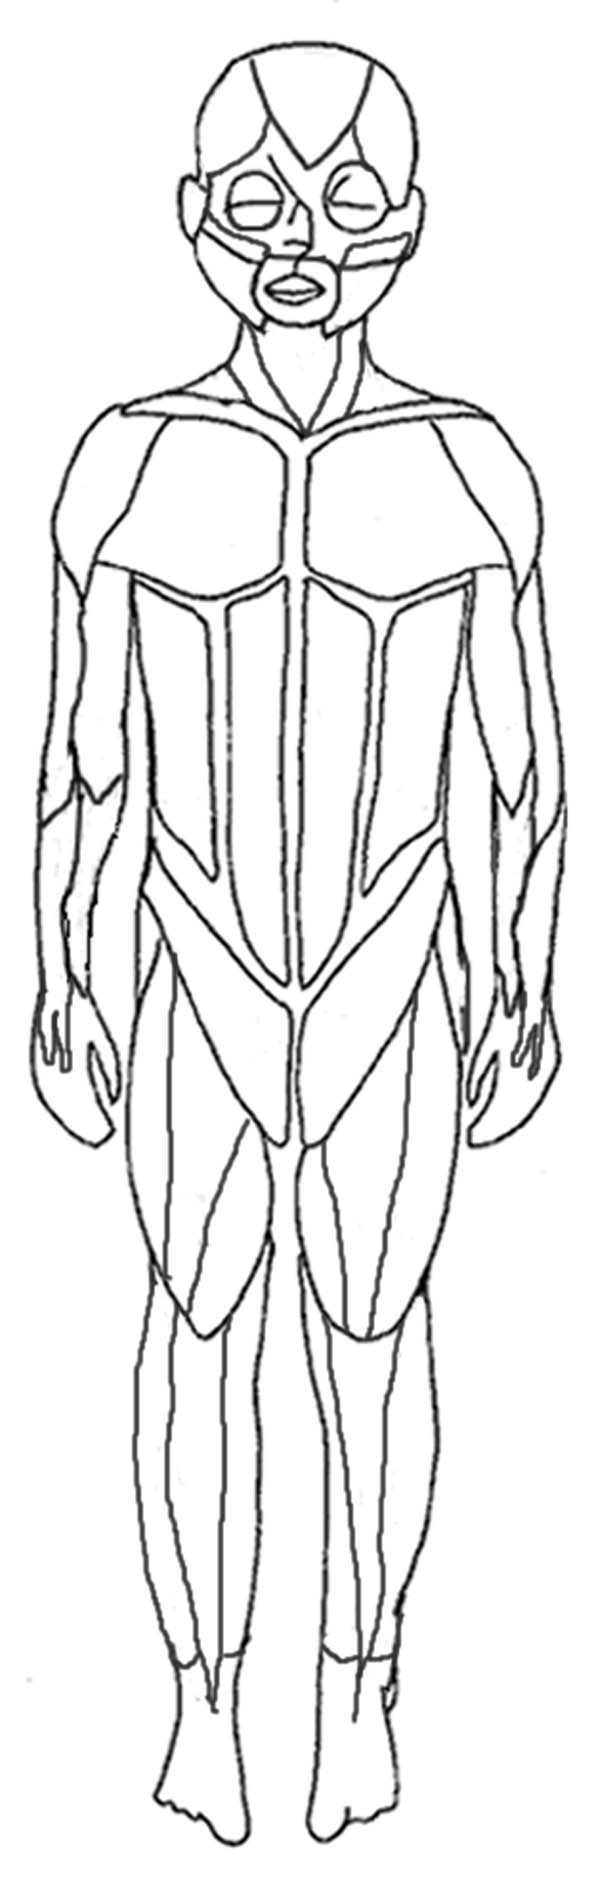 Human Anatomy, : Human Anatomy Human Muscles Coloring Pages